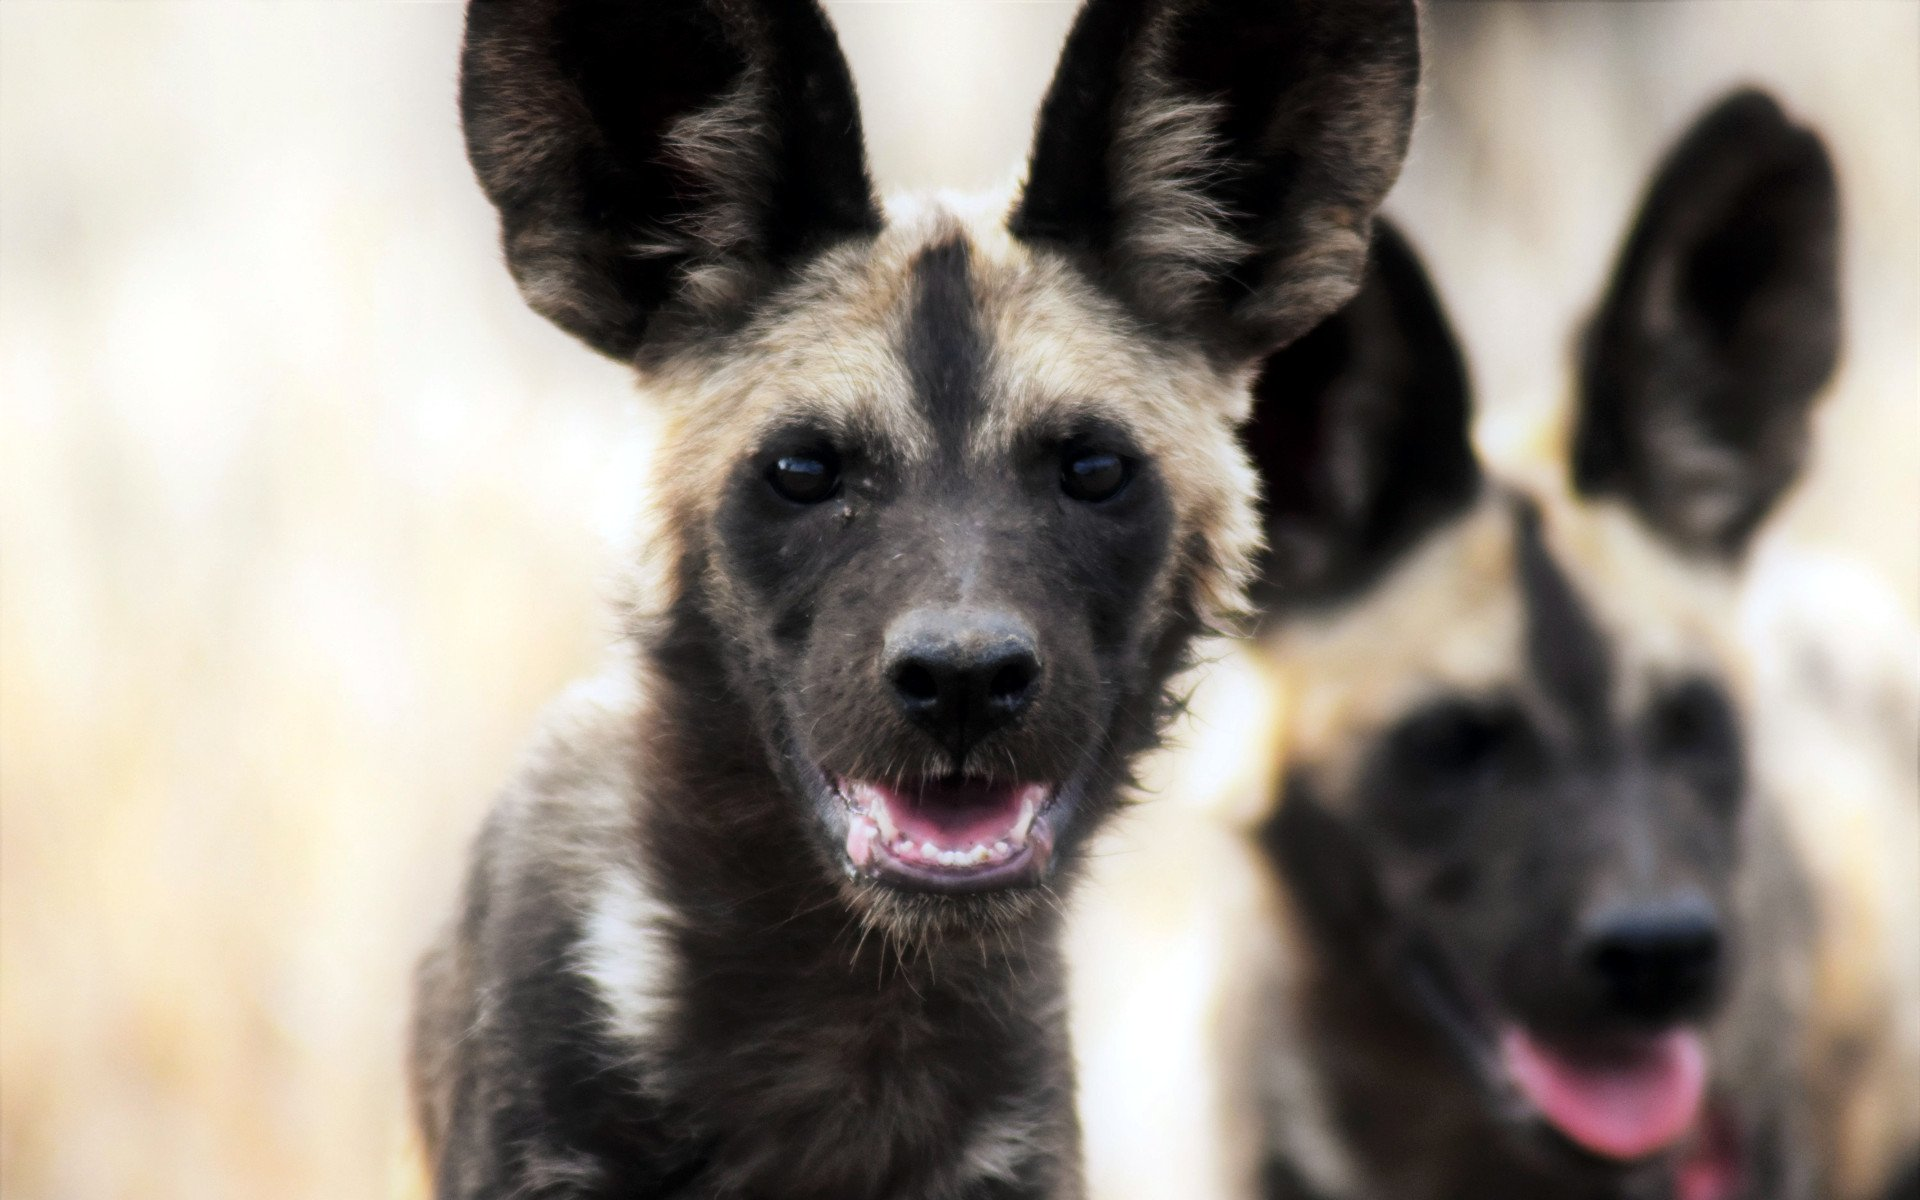 Places to spot the Wild Dogs: Mara North Conservancy, Mpala Center in Kenya, and Samburu National Reserve.